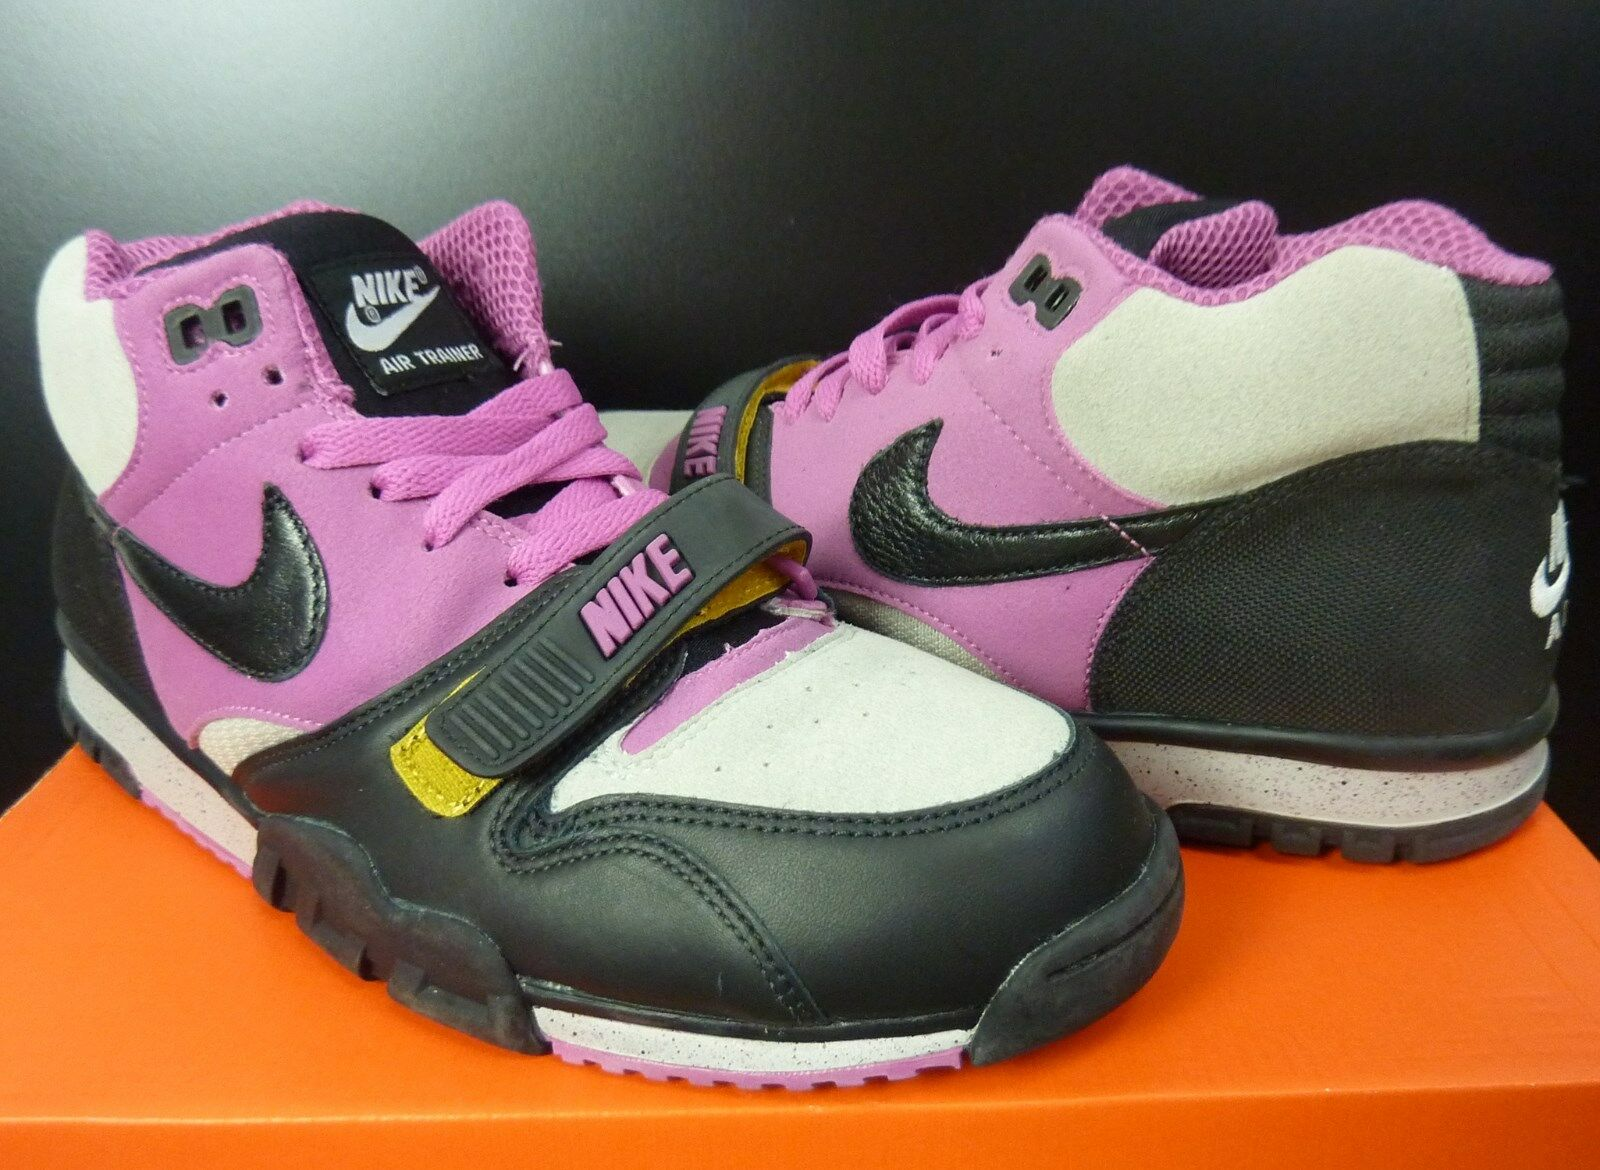 NEW NIKE AIR TRAINER 1 SHOES SNEAKERS DEADSTOCK SIZE 8.5 US Comfortable and good-looking